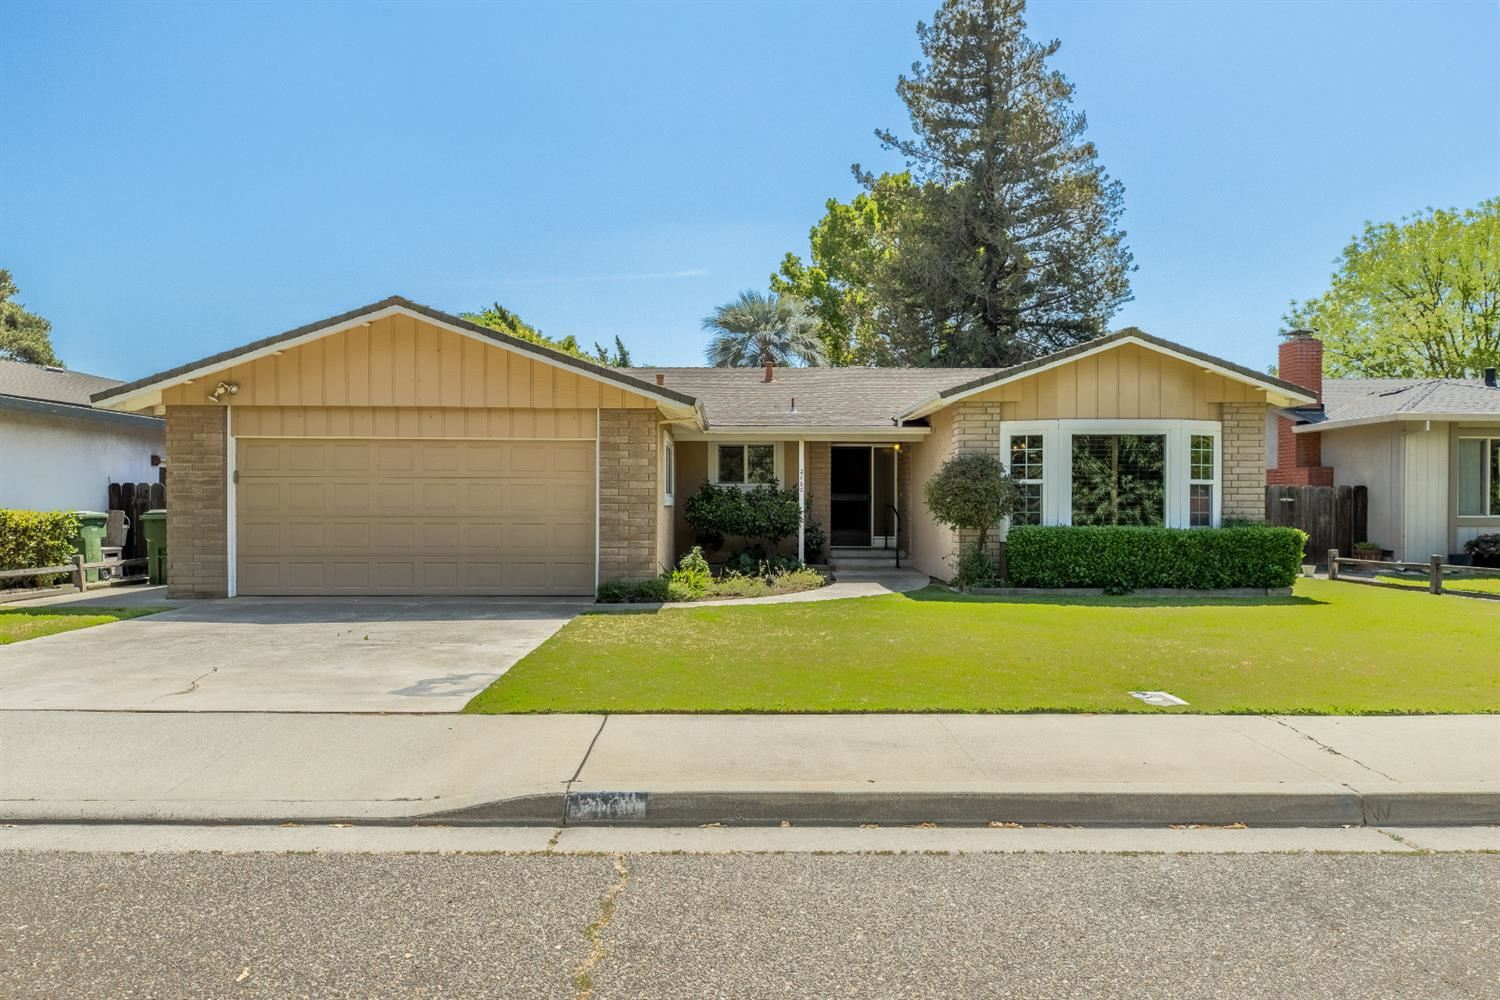 Photo of 2160 Christine Way, Turlock, CA 95380 (MLS # 221048969)